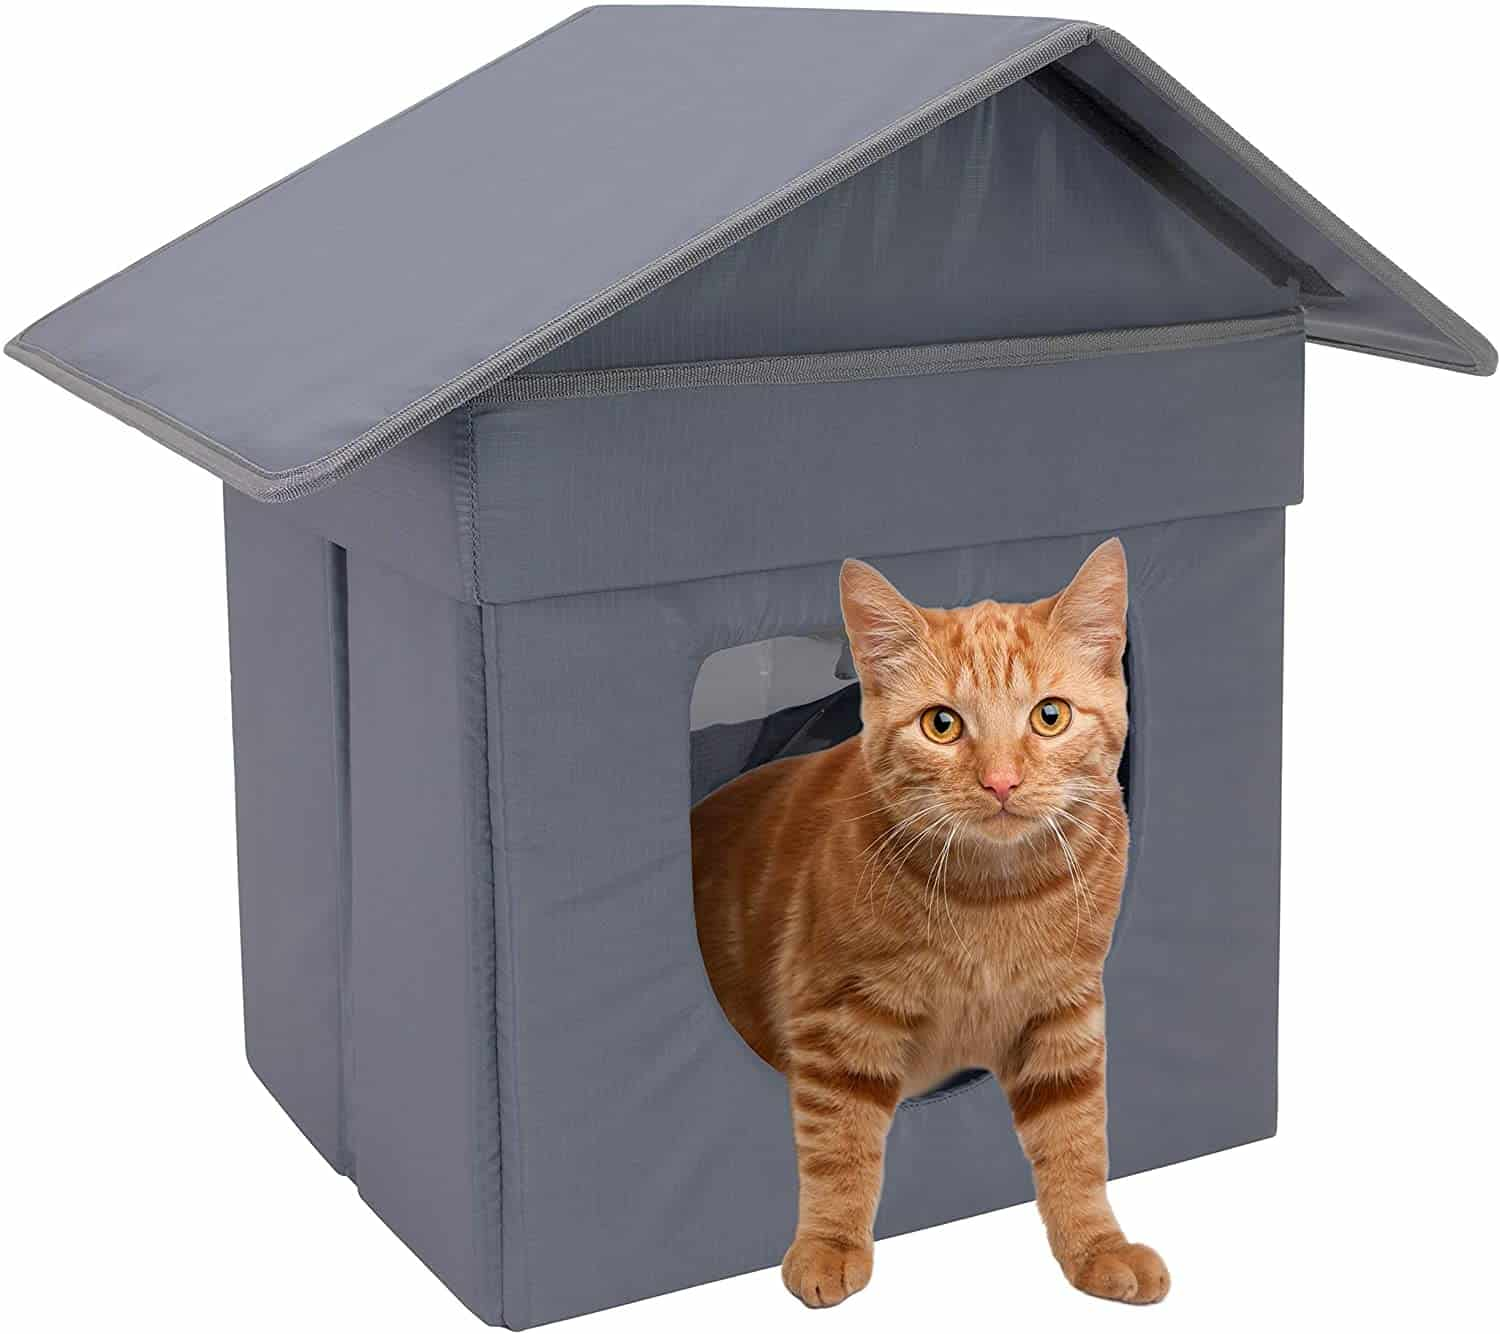 Best Outdoor Cat House for 2020 Plus Reviews of Other Top Picks 3